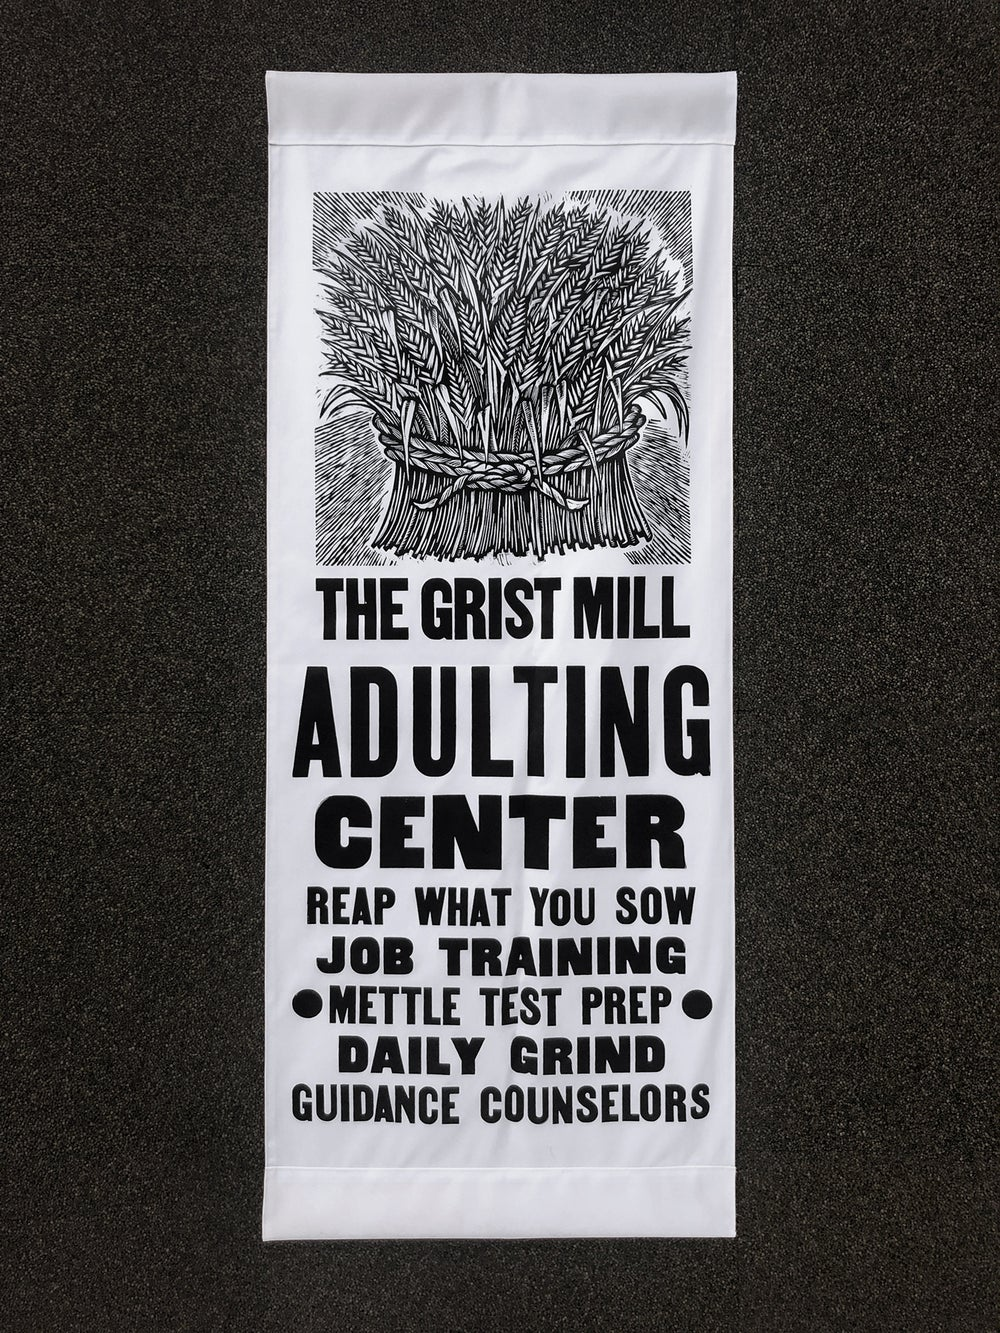 Image of The Grist Mill Adulting Center